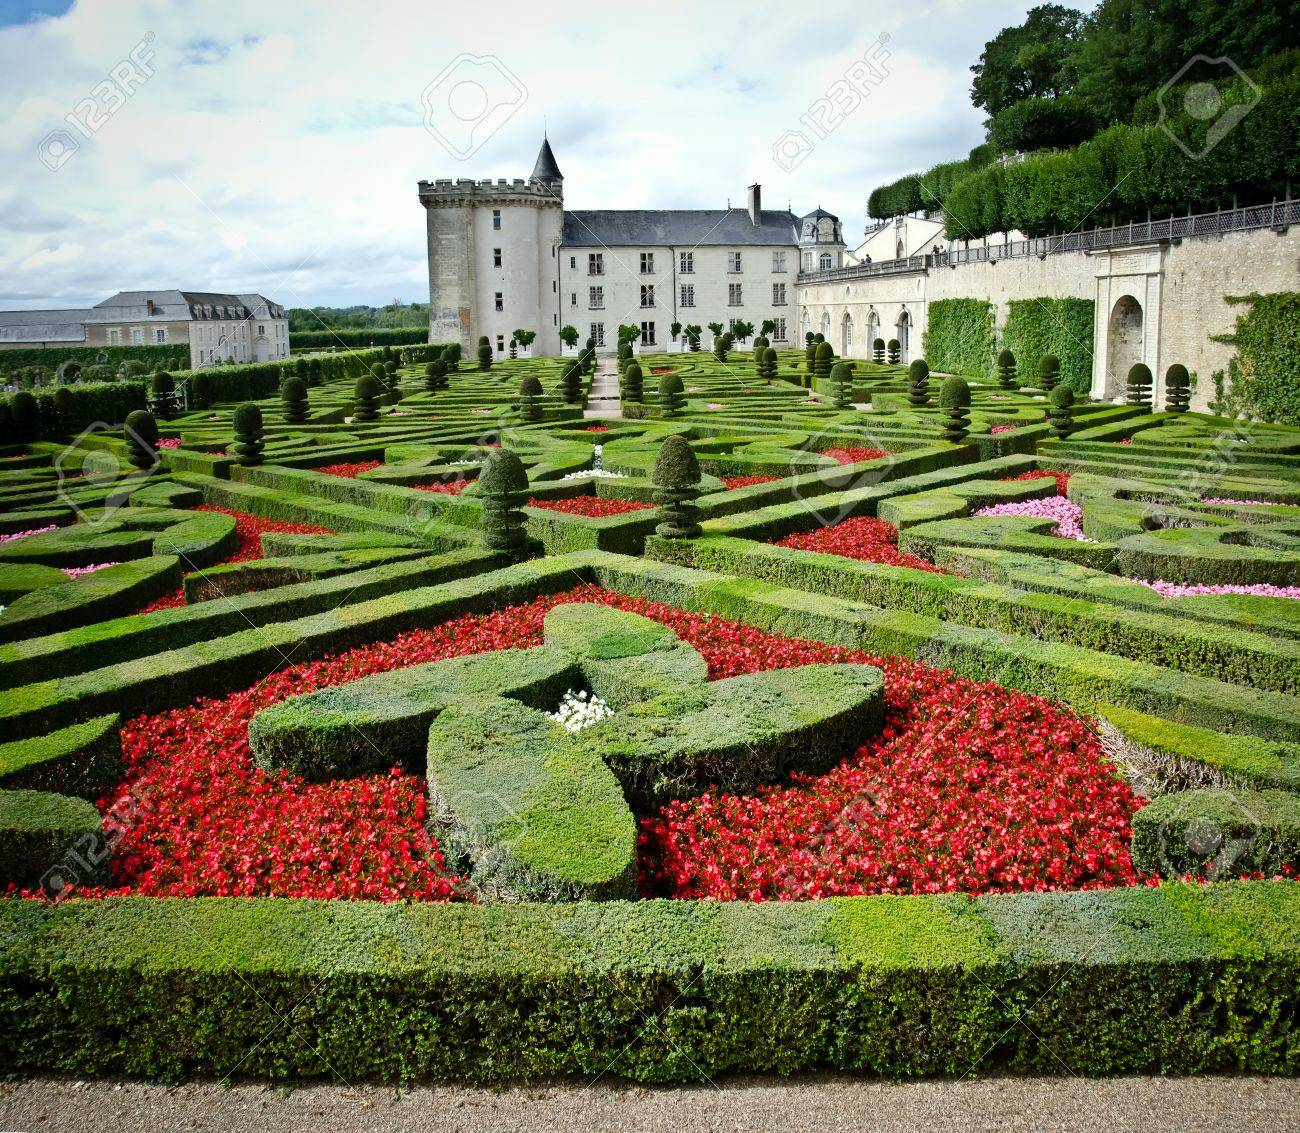 gardens and castle in villandry, loire valley, France Stock Photo - 10414170